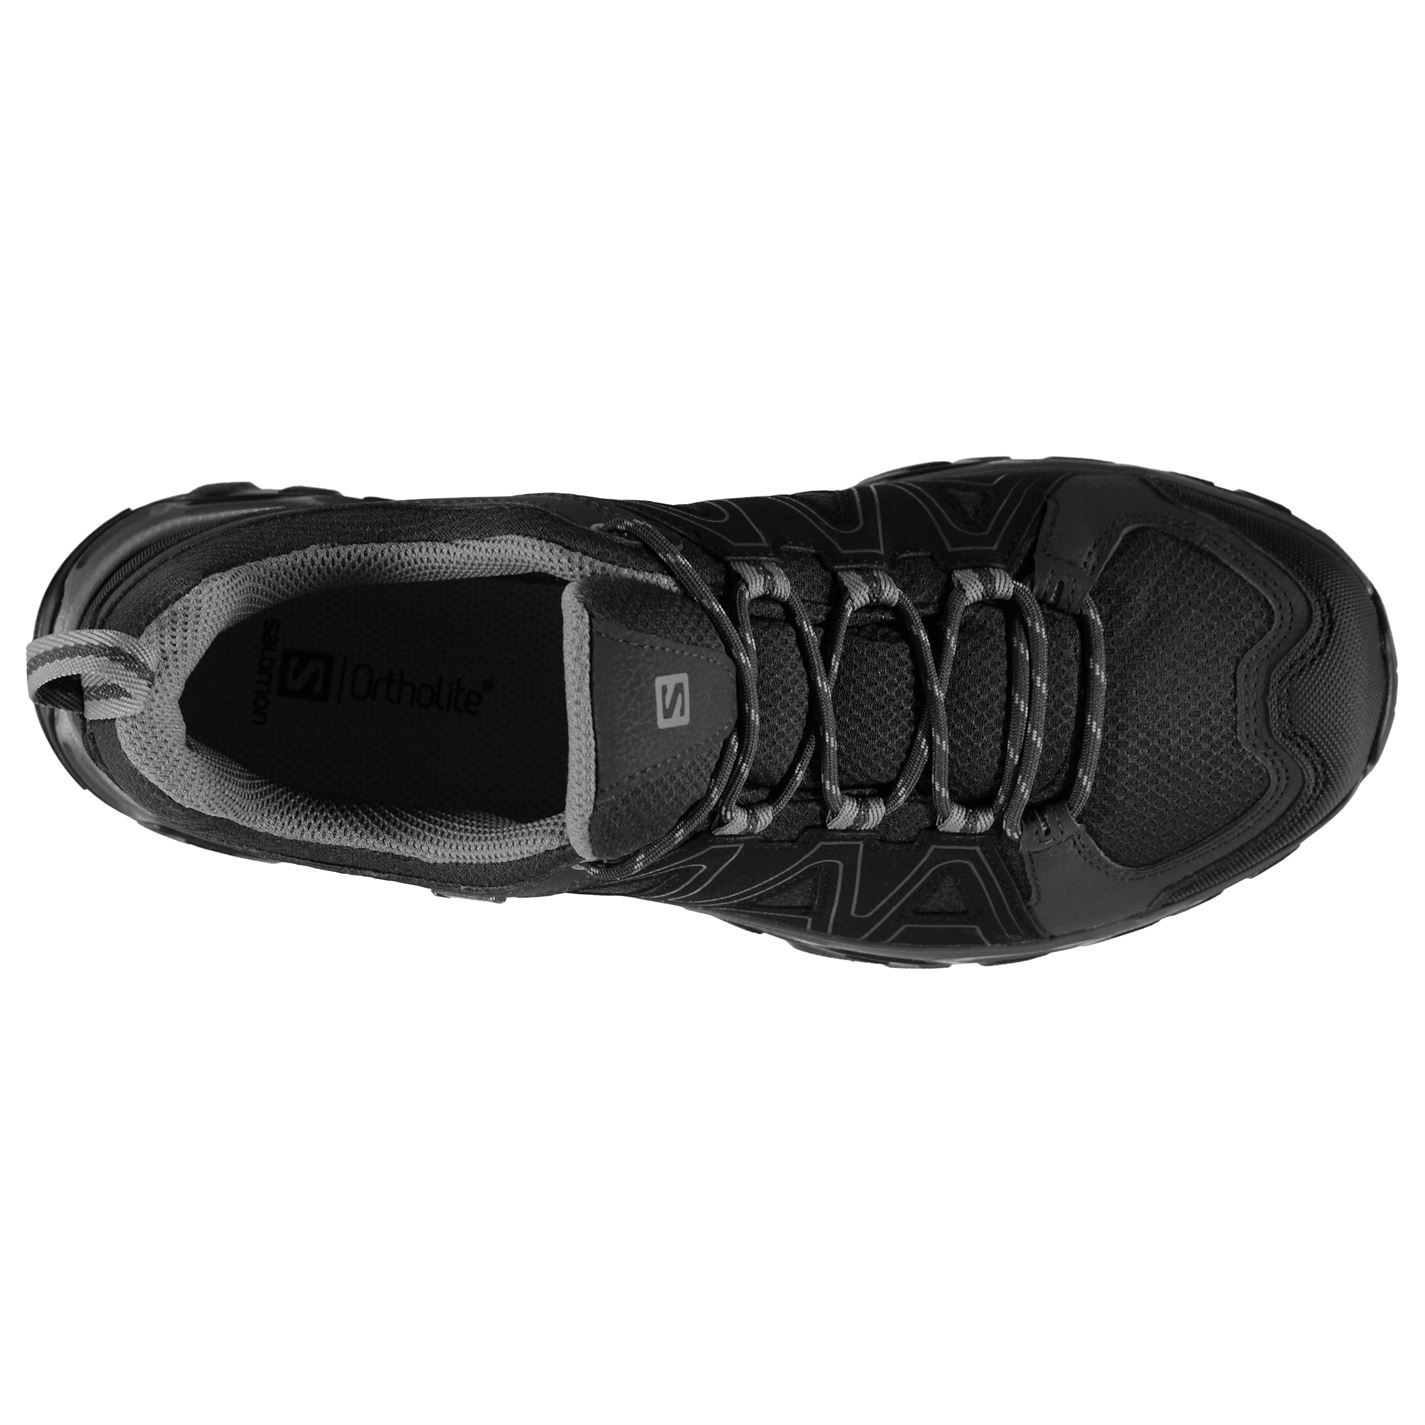 zapatos salomon venezuela zip xl